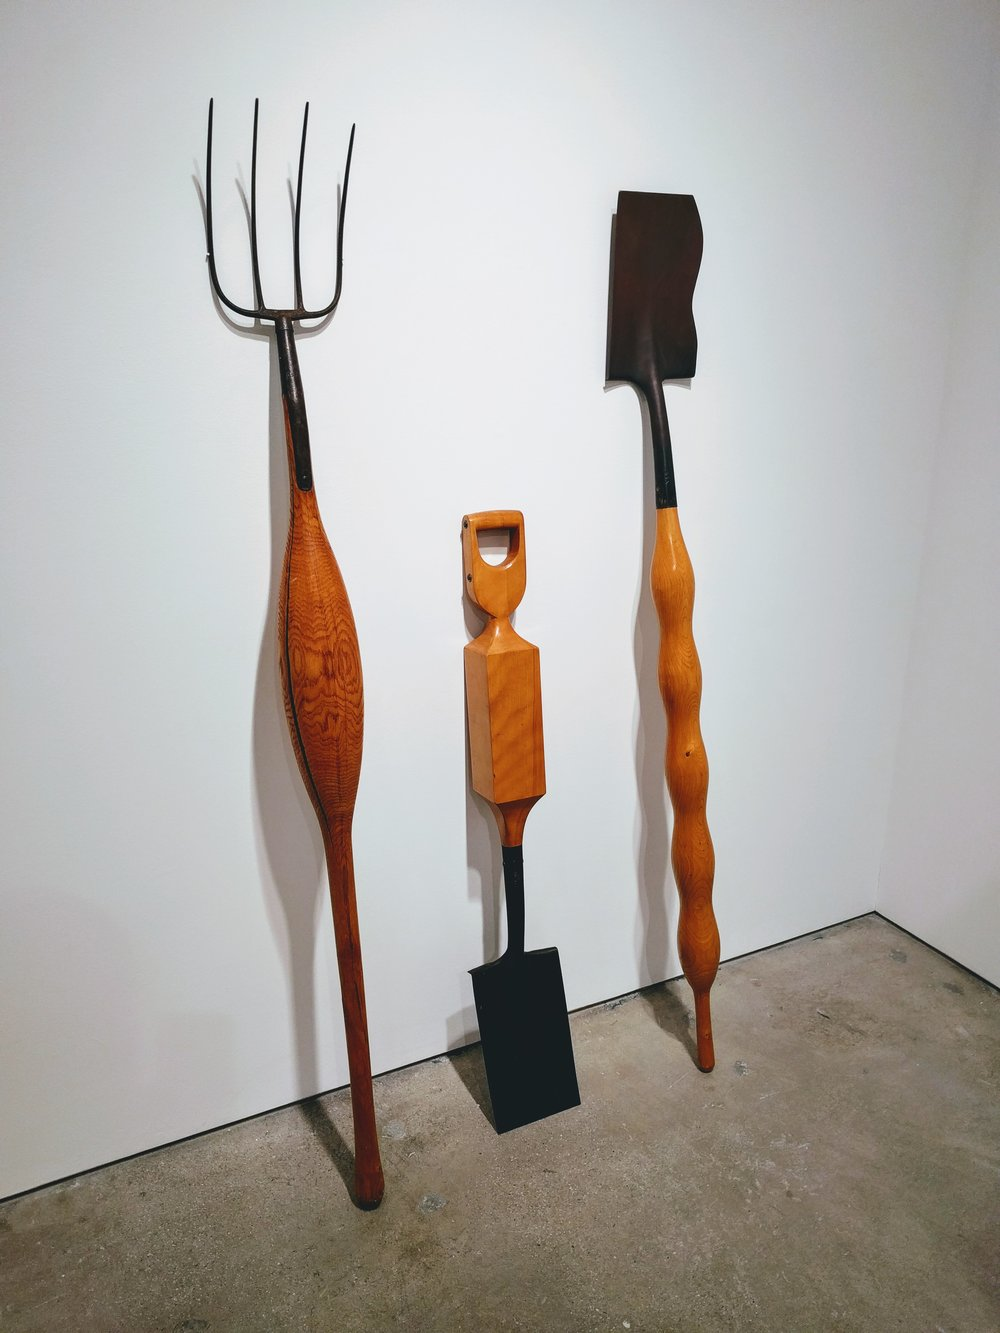 Pitchfork and Shovels, 1970, William Umbreit (Allan Stone Projects) Photo by Jonathan Morgan